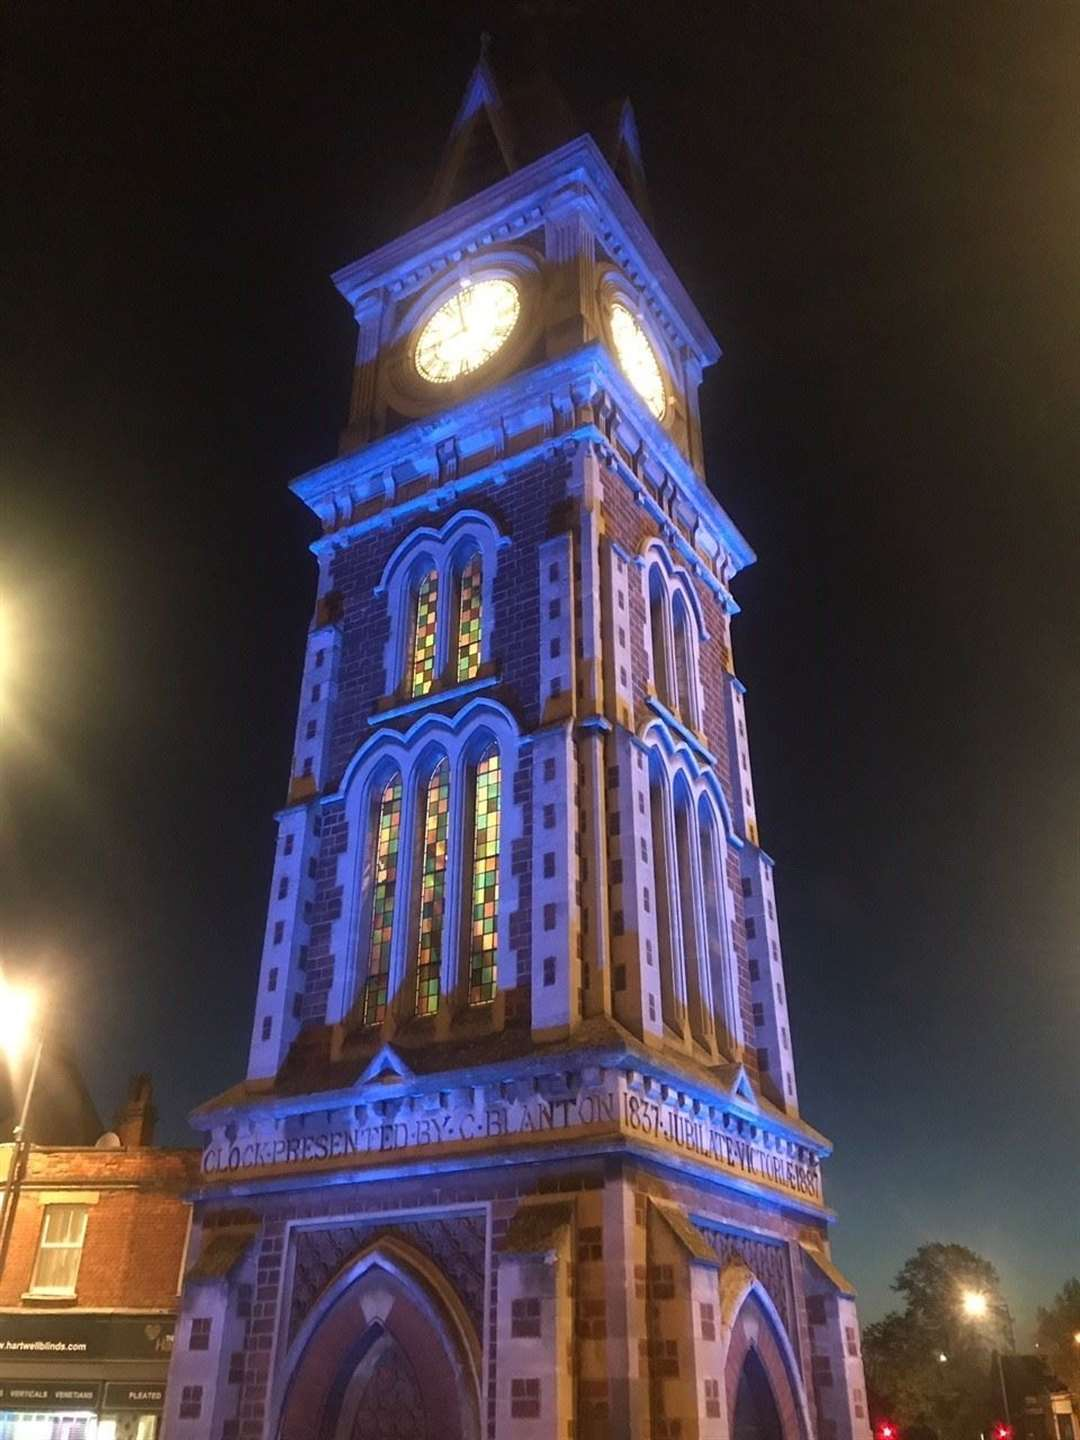 Newmarket's historic clock tower, which had a new lighting system installed last year, has been lit in blue as a tribute to the work being done by NHS and care staff during the current coronavirus crisis.